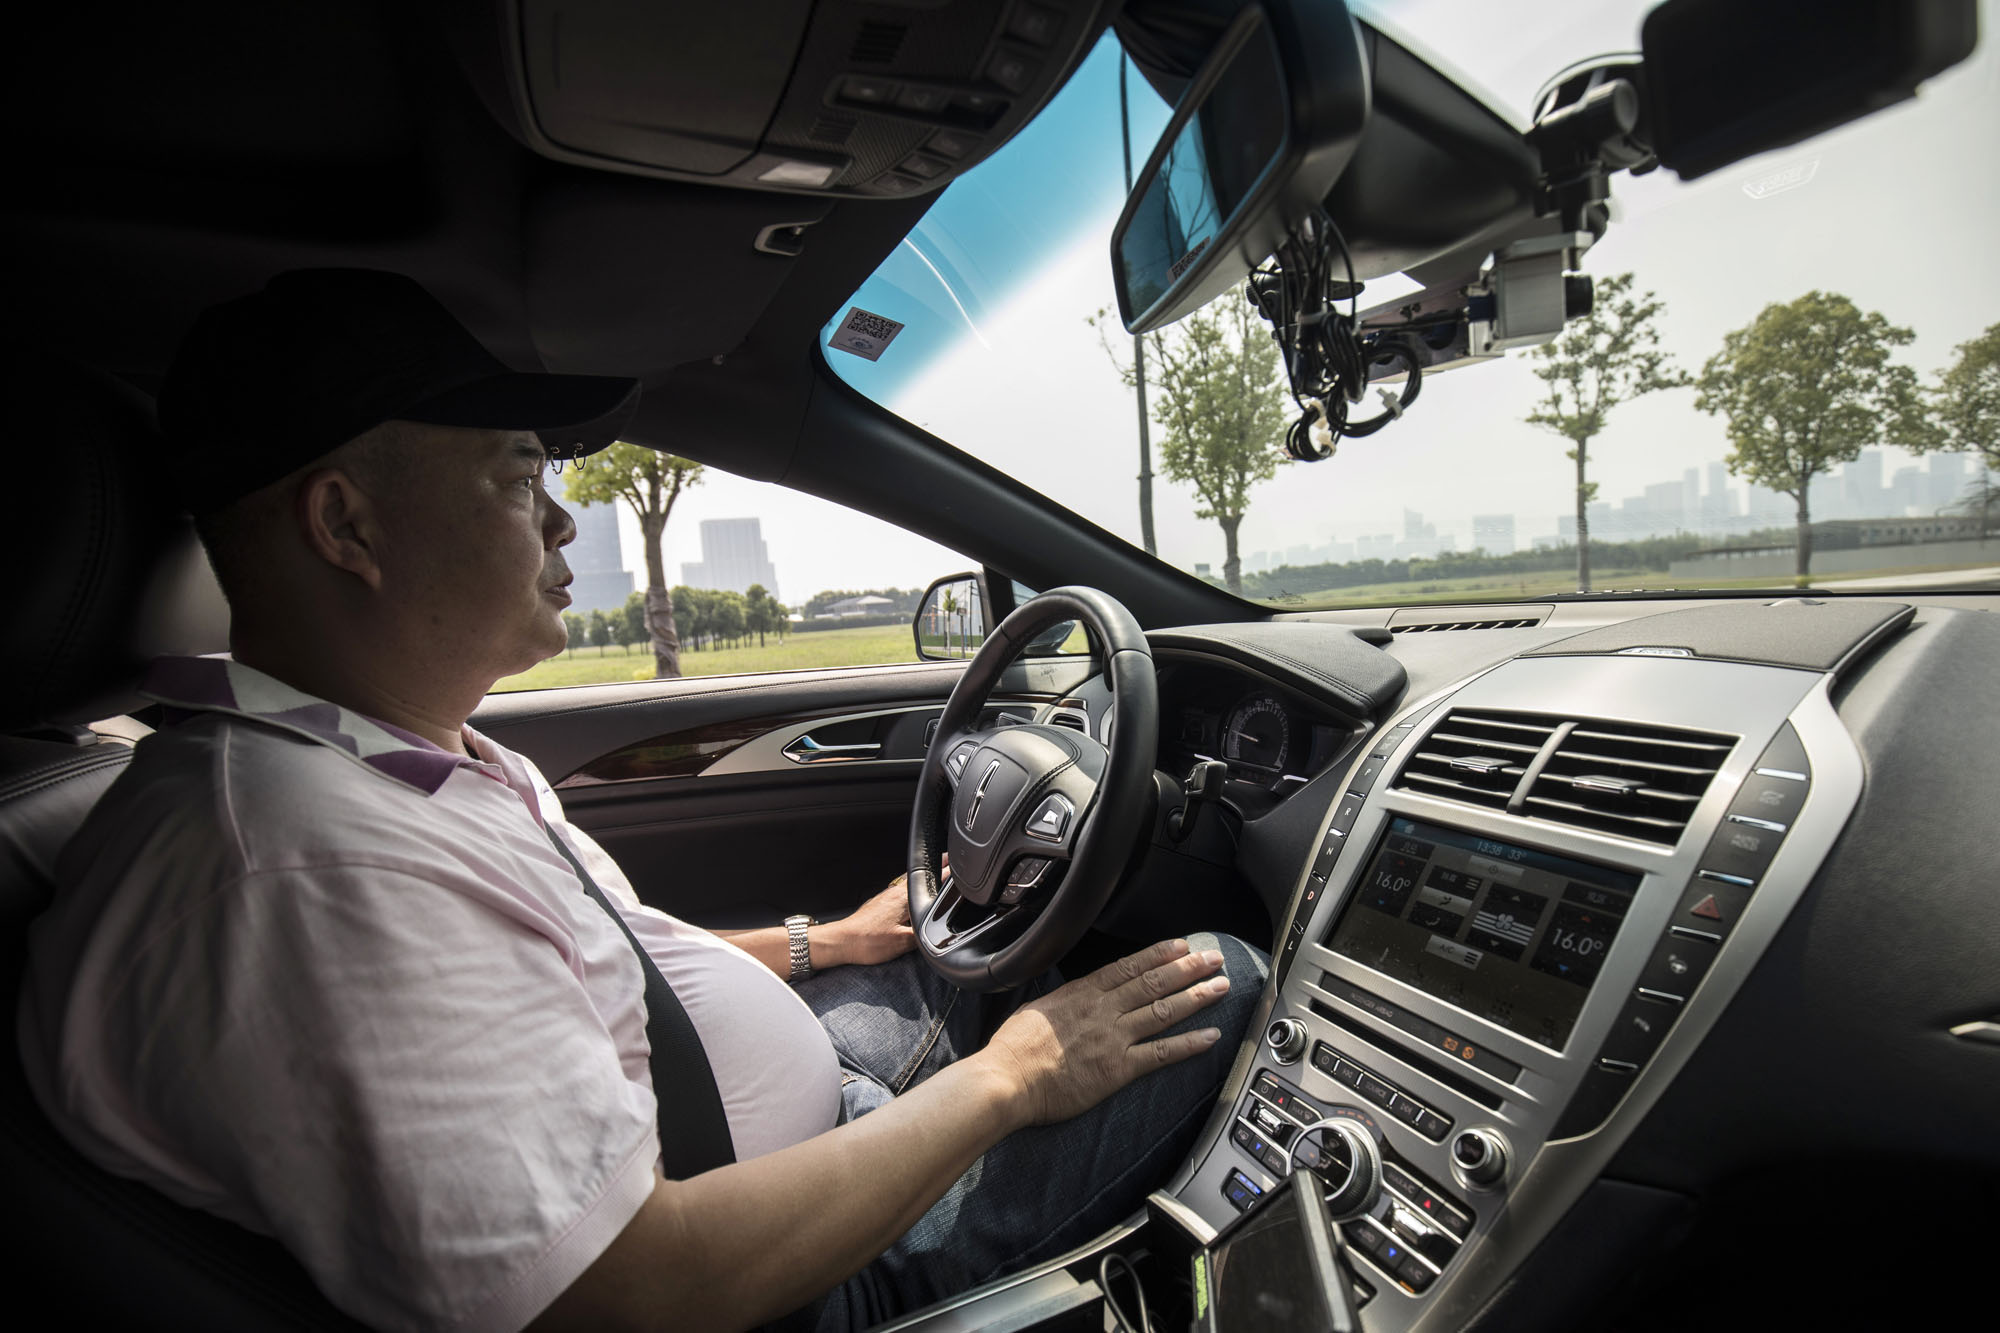 Self-driving cars will have to navigate life-or-death ethical dilemmas. | BLOOMBERG